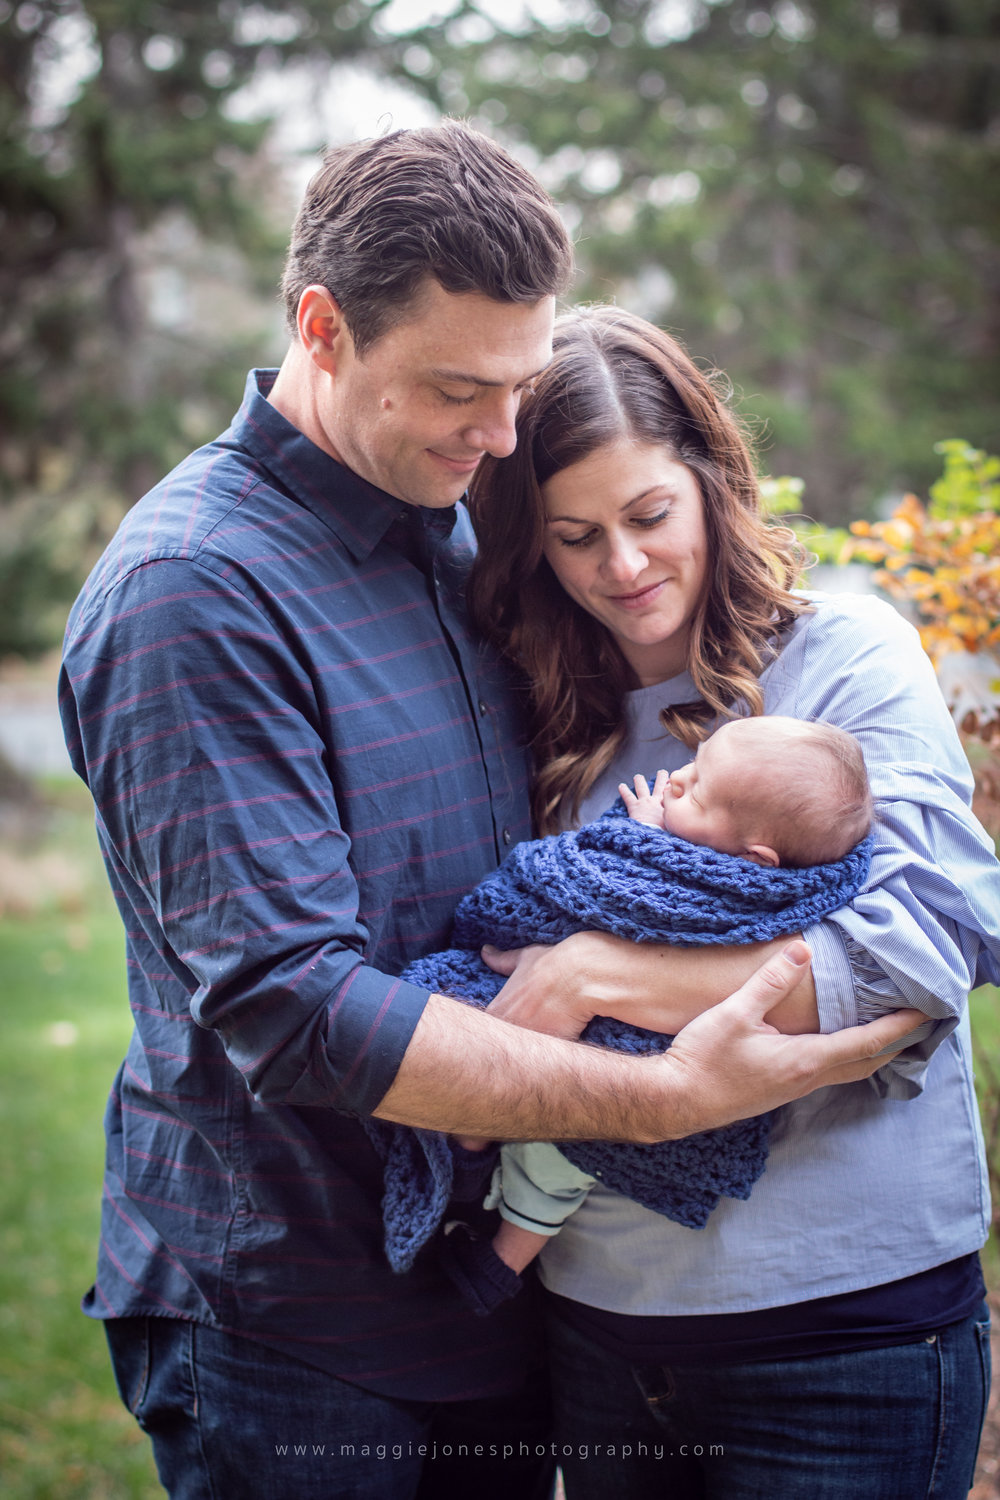 CogarFamily_HudnerNewborn_BLOG-1-16.jpg